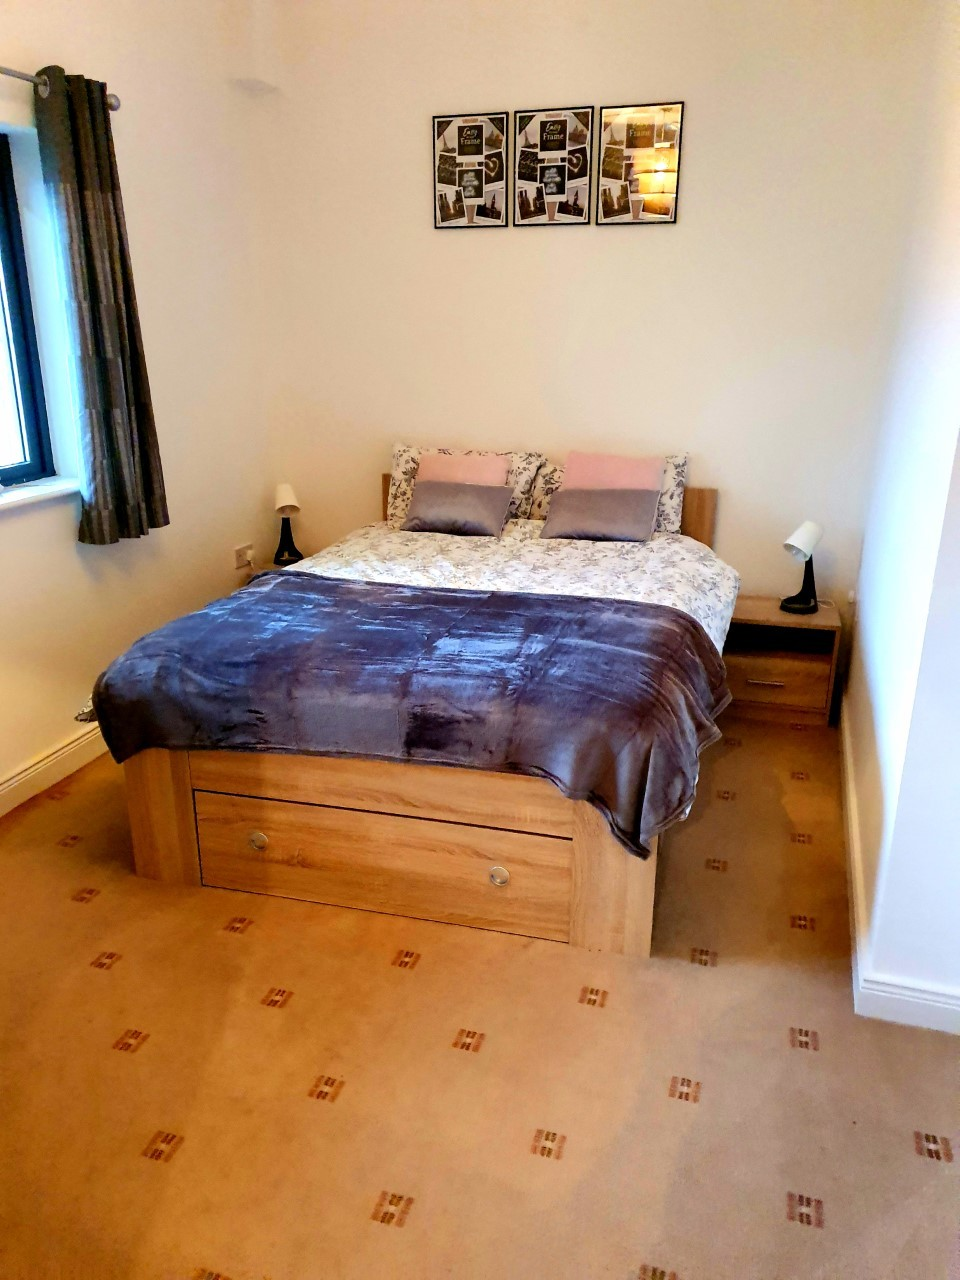 33 The Towers, Fairgreen, Mallow, Co. Cork